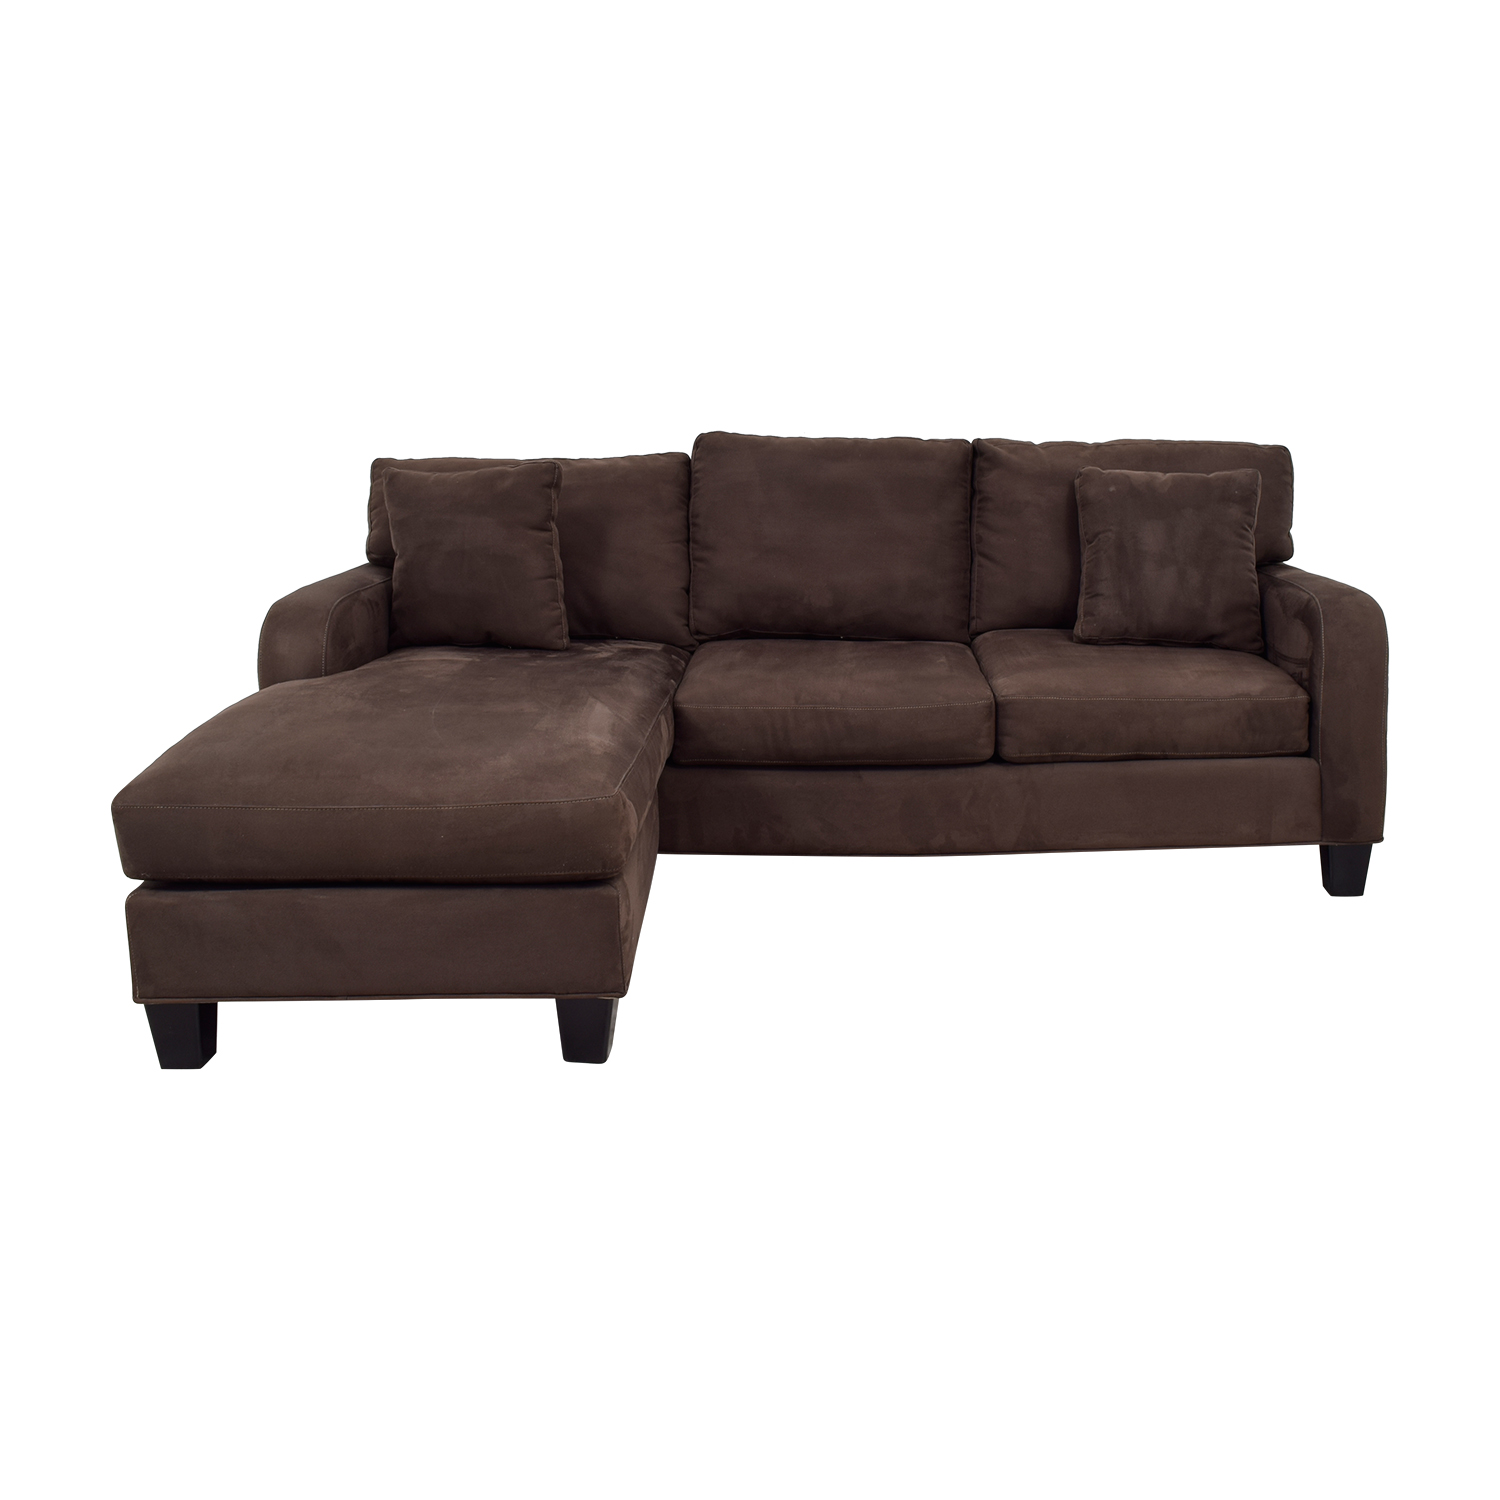 Cindy Crawford Home Cindy Crawford Home Brown Chaise Sectional Sofas